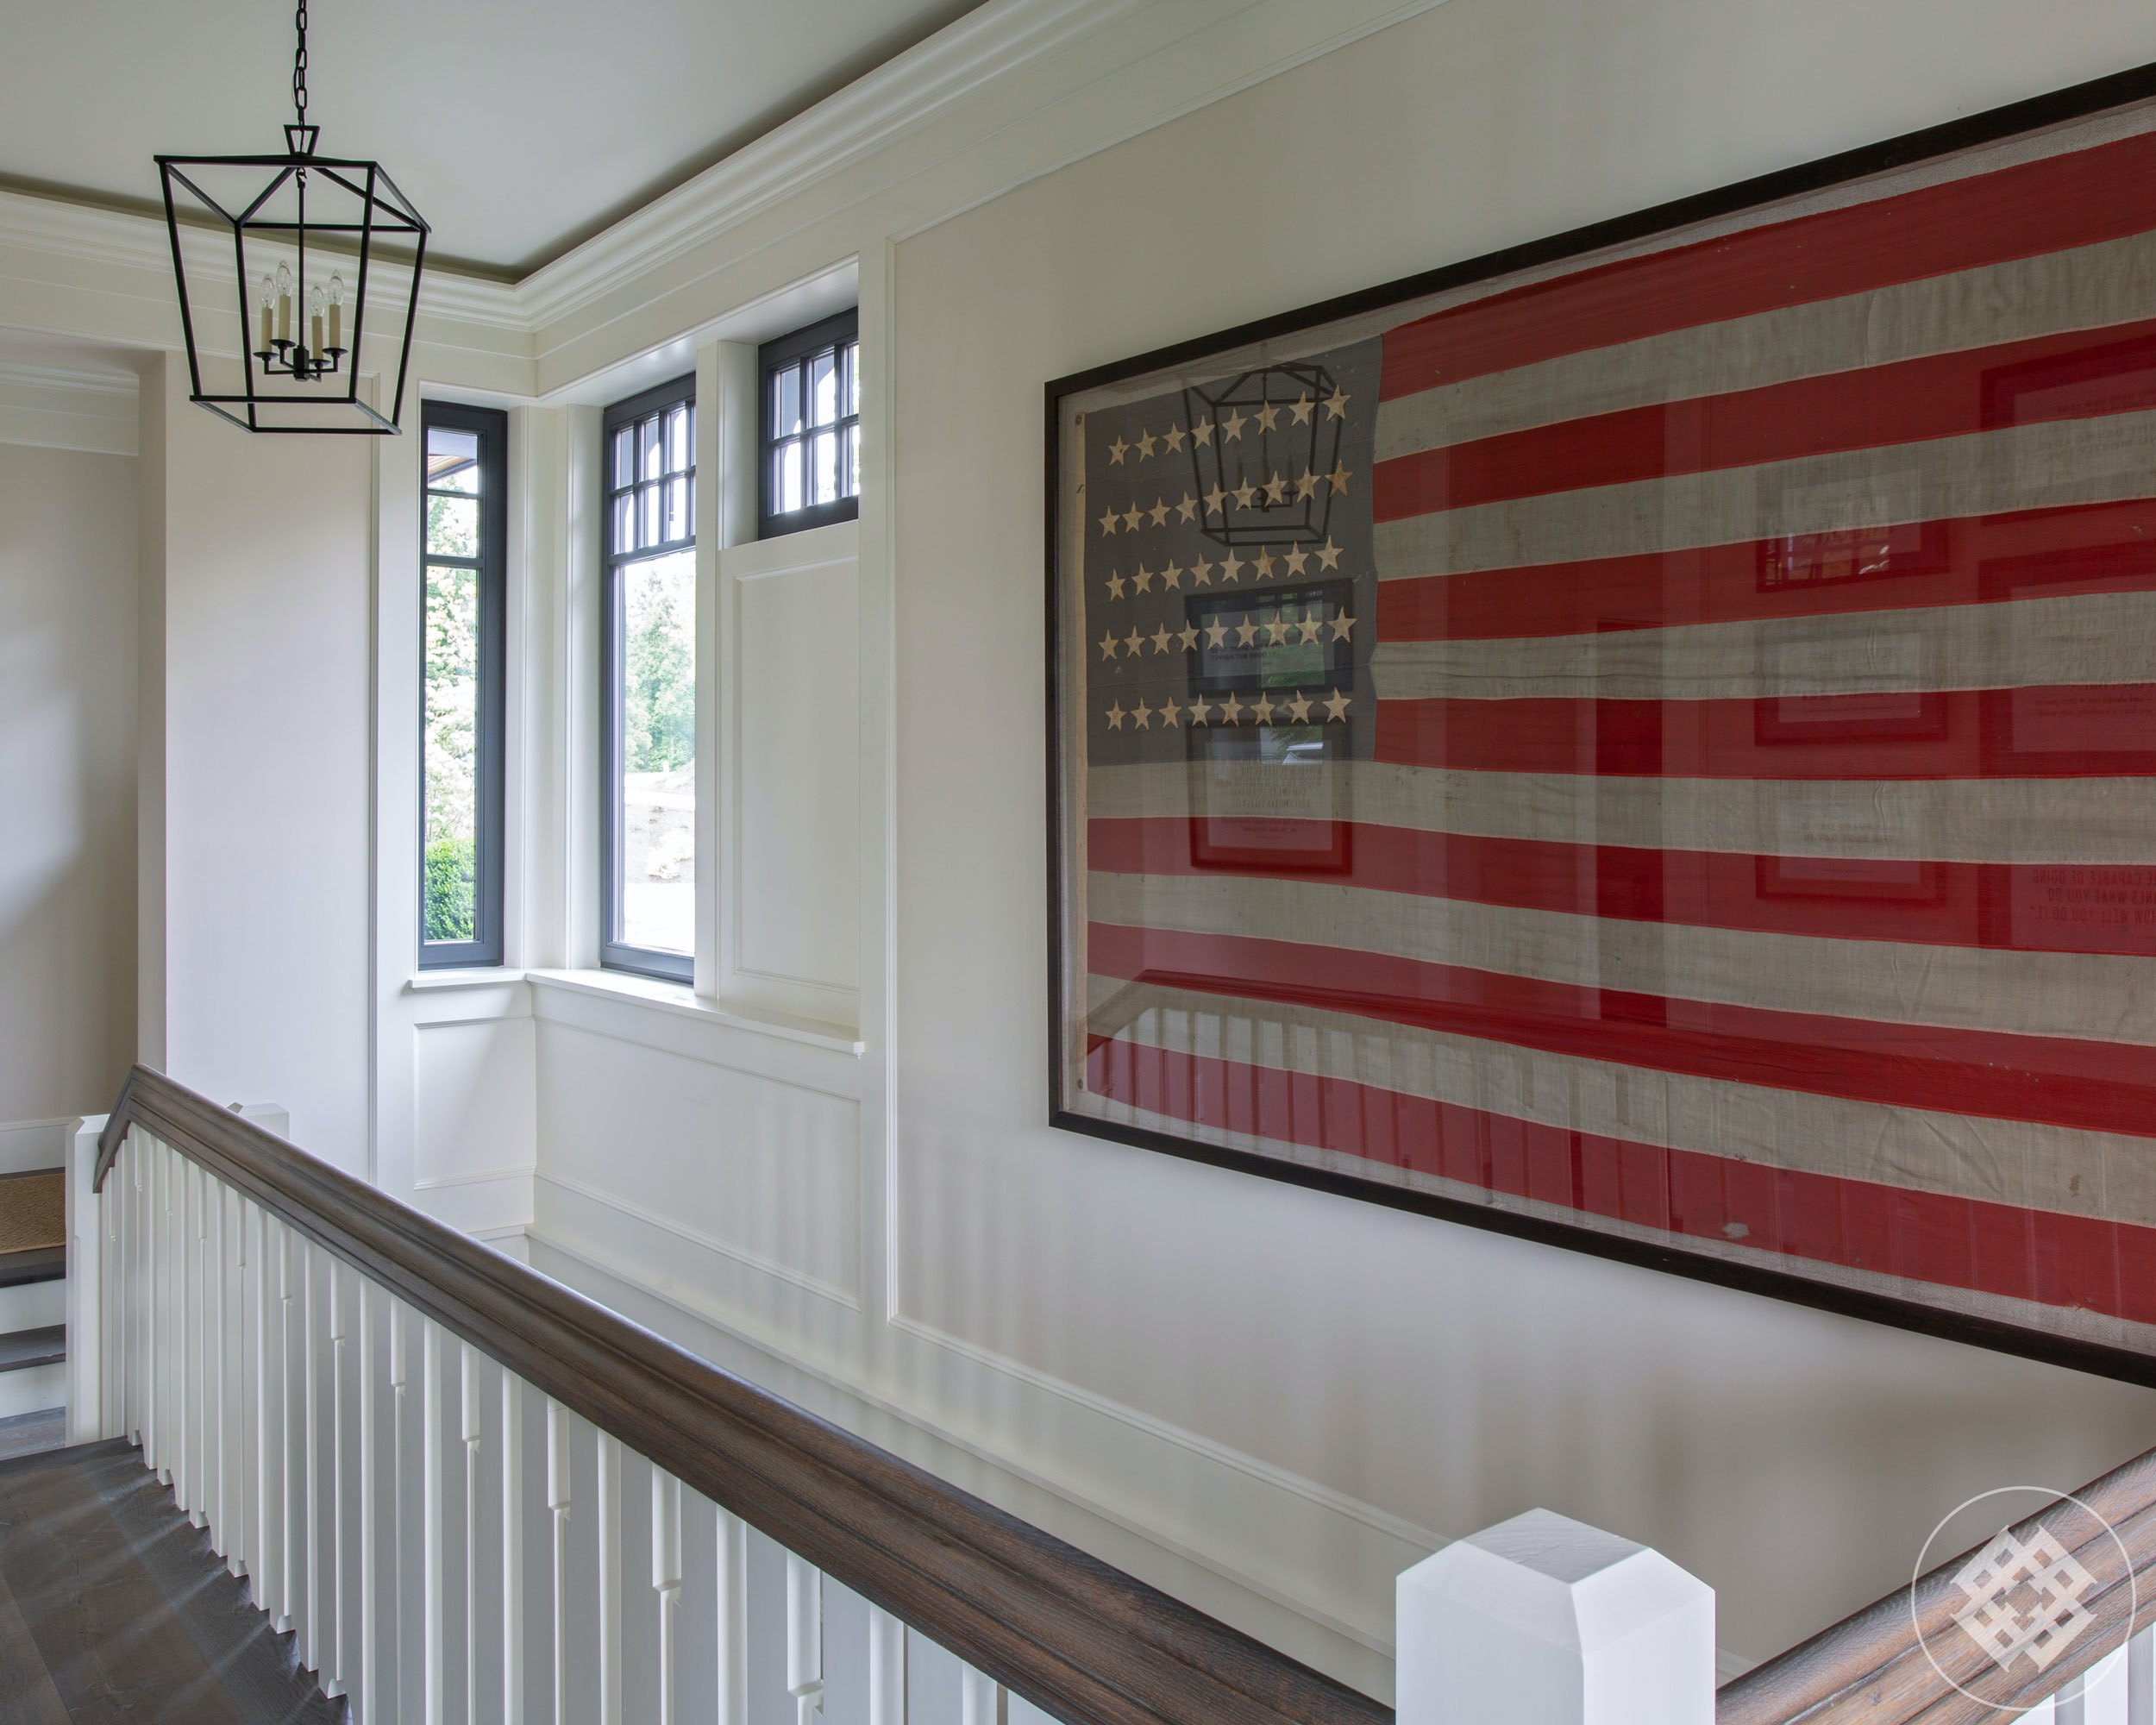 kkl-vintage-42-star-american-flag-graces-top-of-lake-house-stairs.jpg